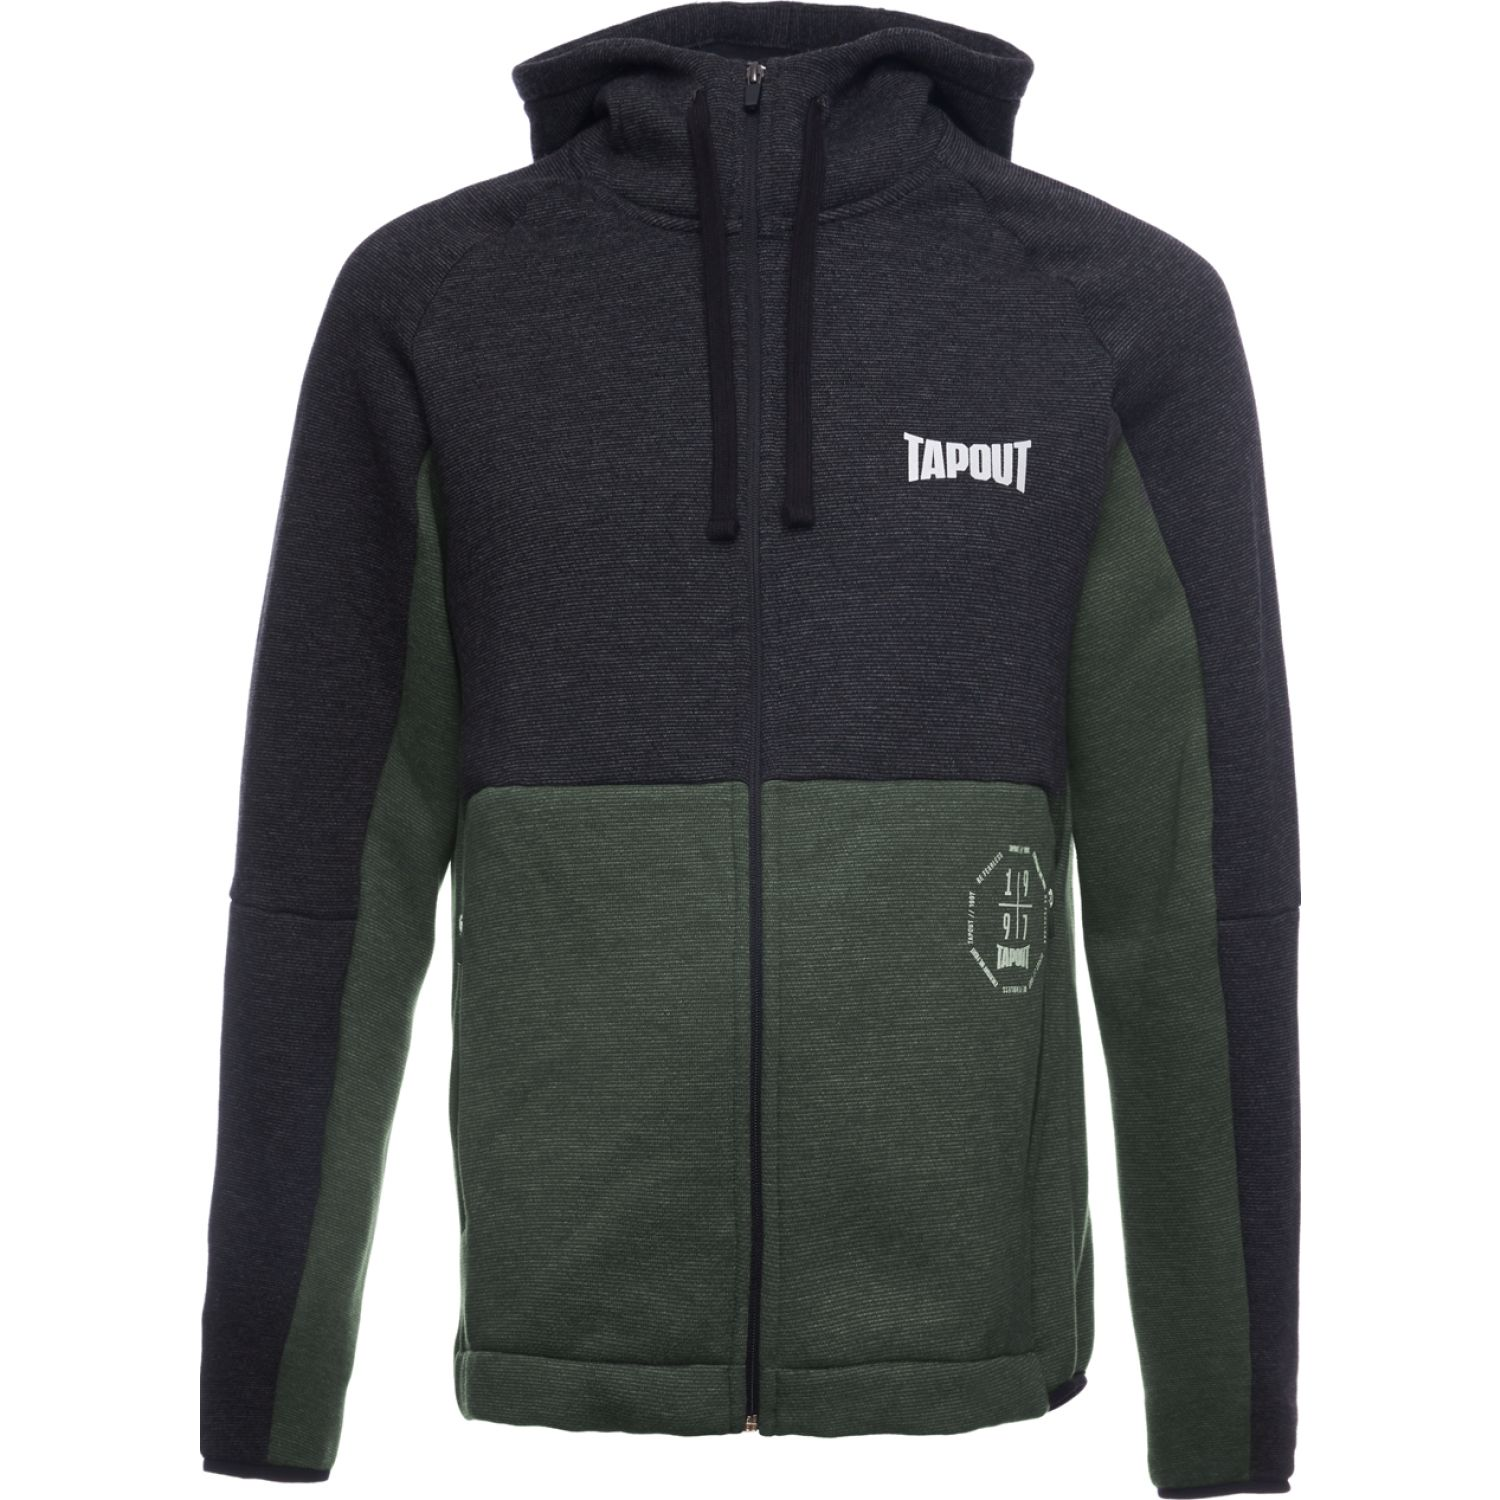 TAPOUT POLERA CASUAL TYRELL ALGODÓN Negro Hoodies y Sweaters Fashion